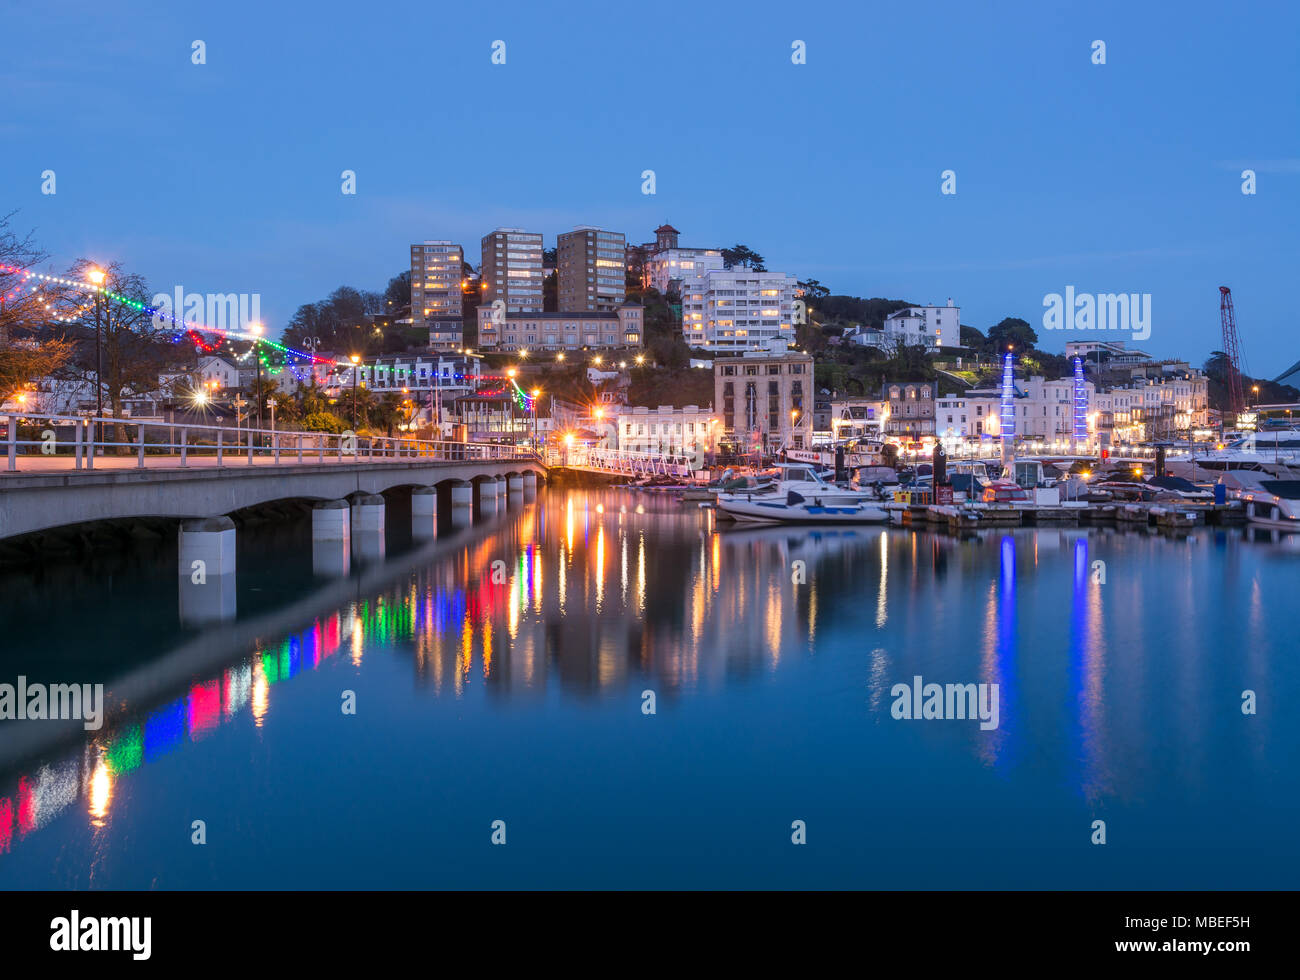 Le port de Torquay au crépuscule Photo Stock